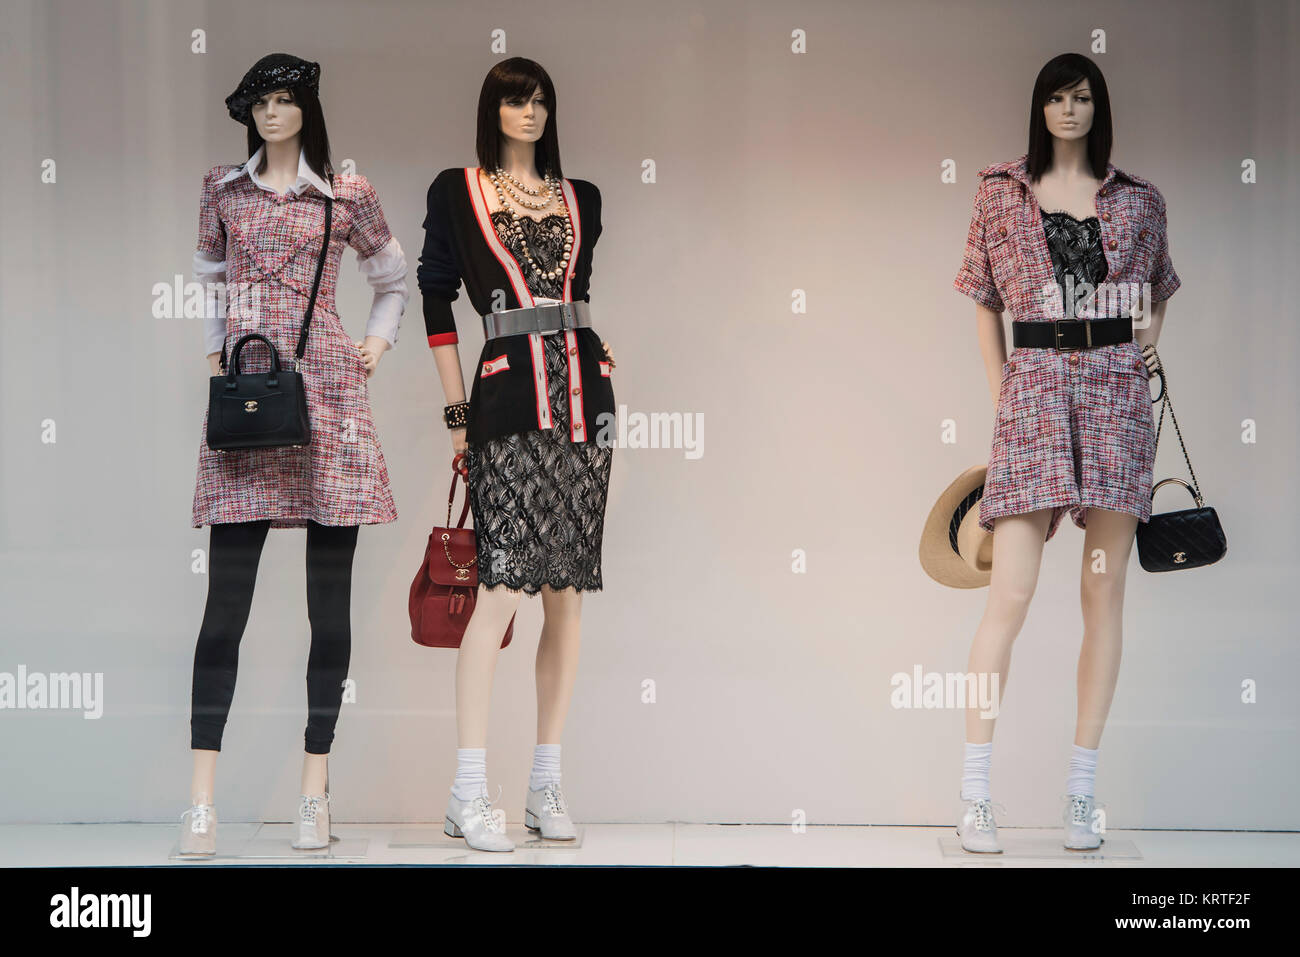 aace1f720d78a4 London, England - February 21, 2017 - Storefront of Chanel brand in London.